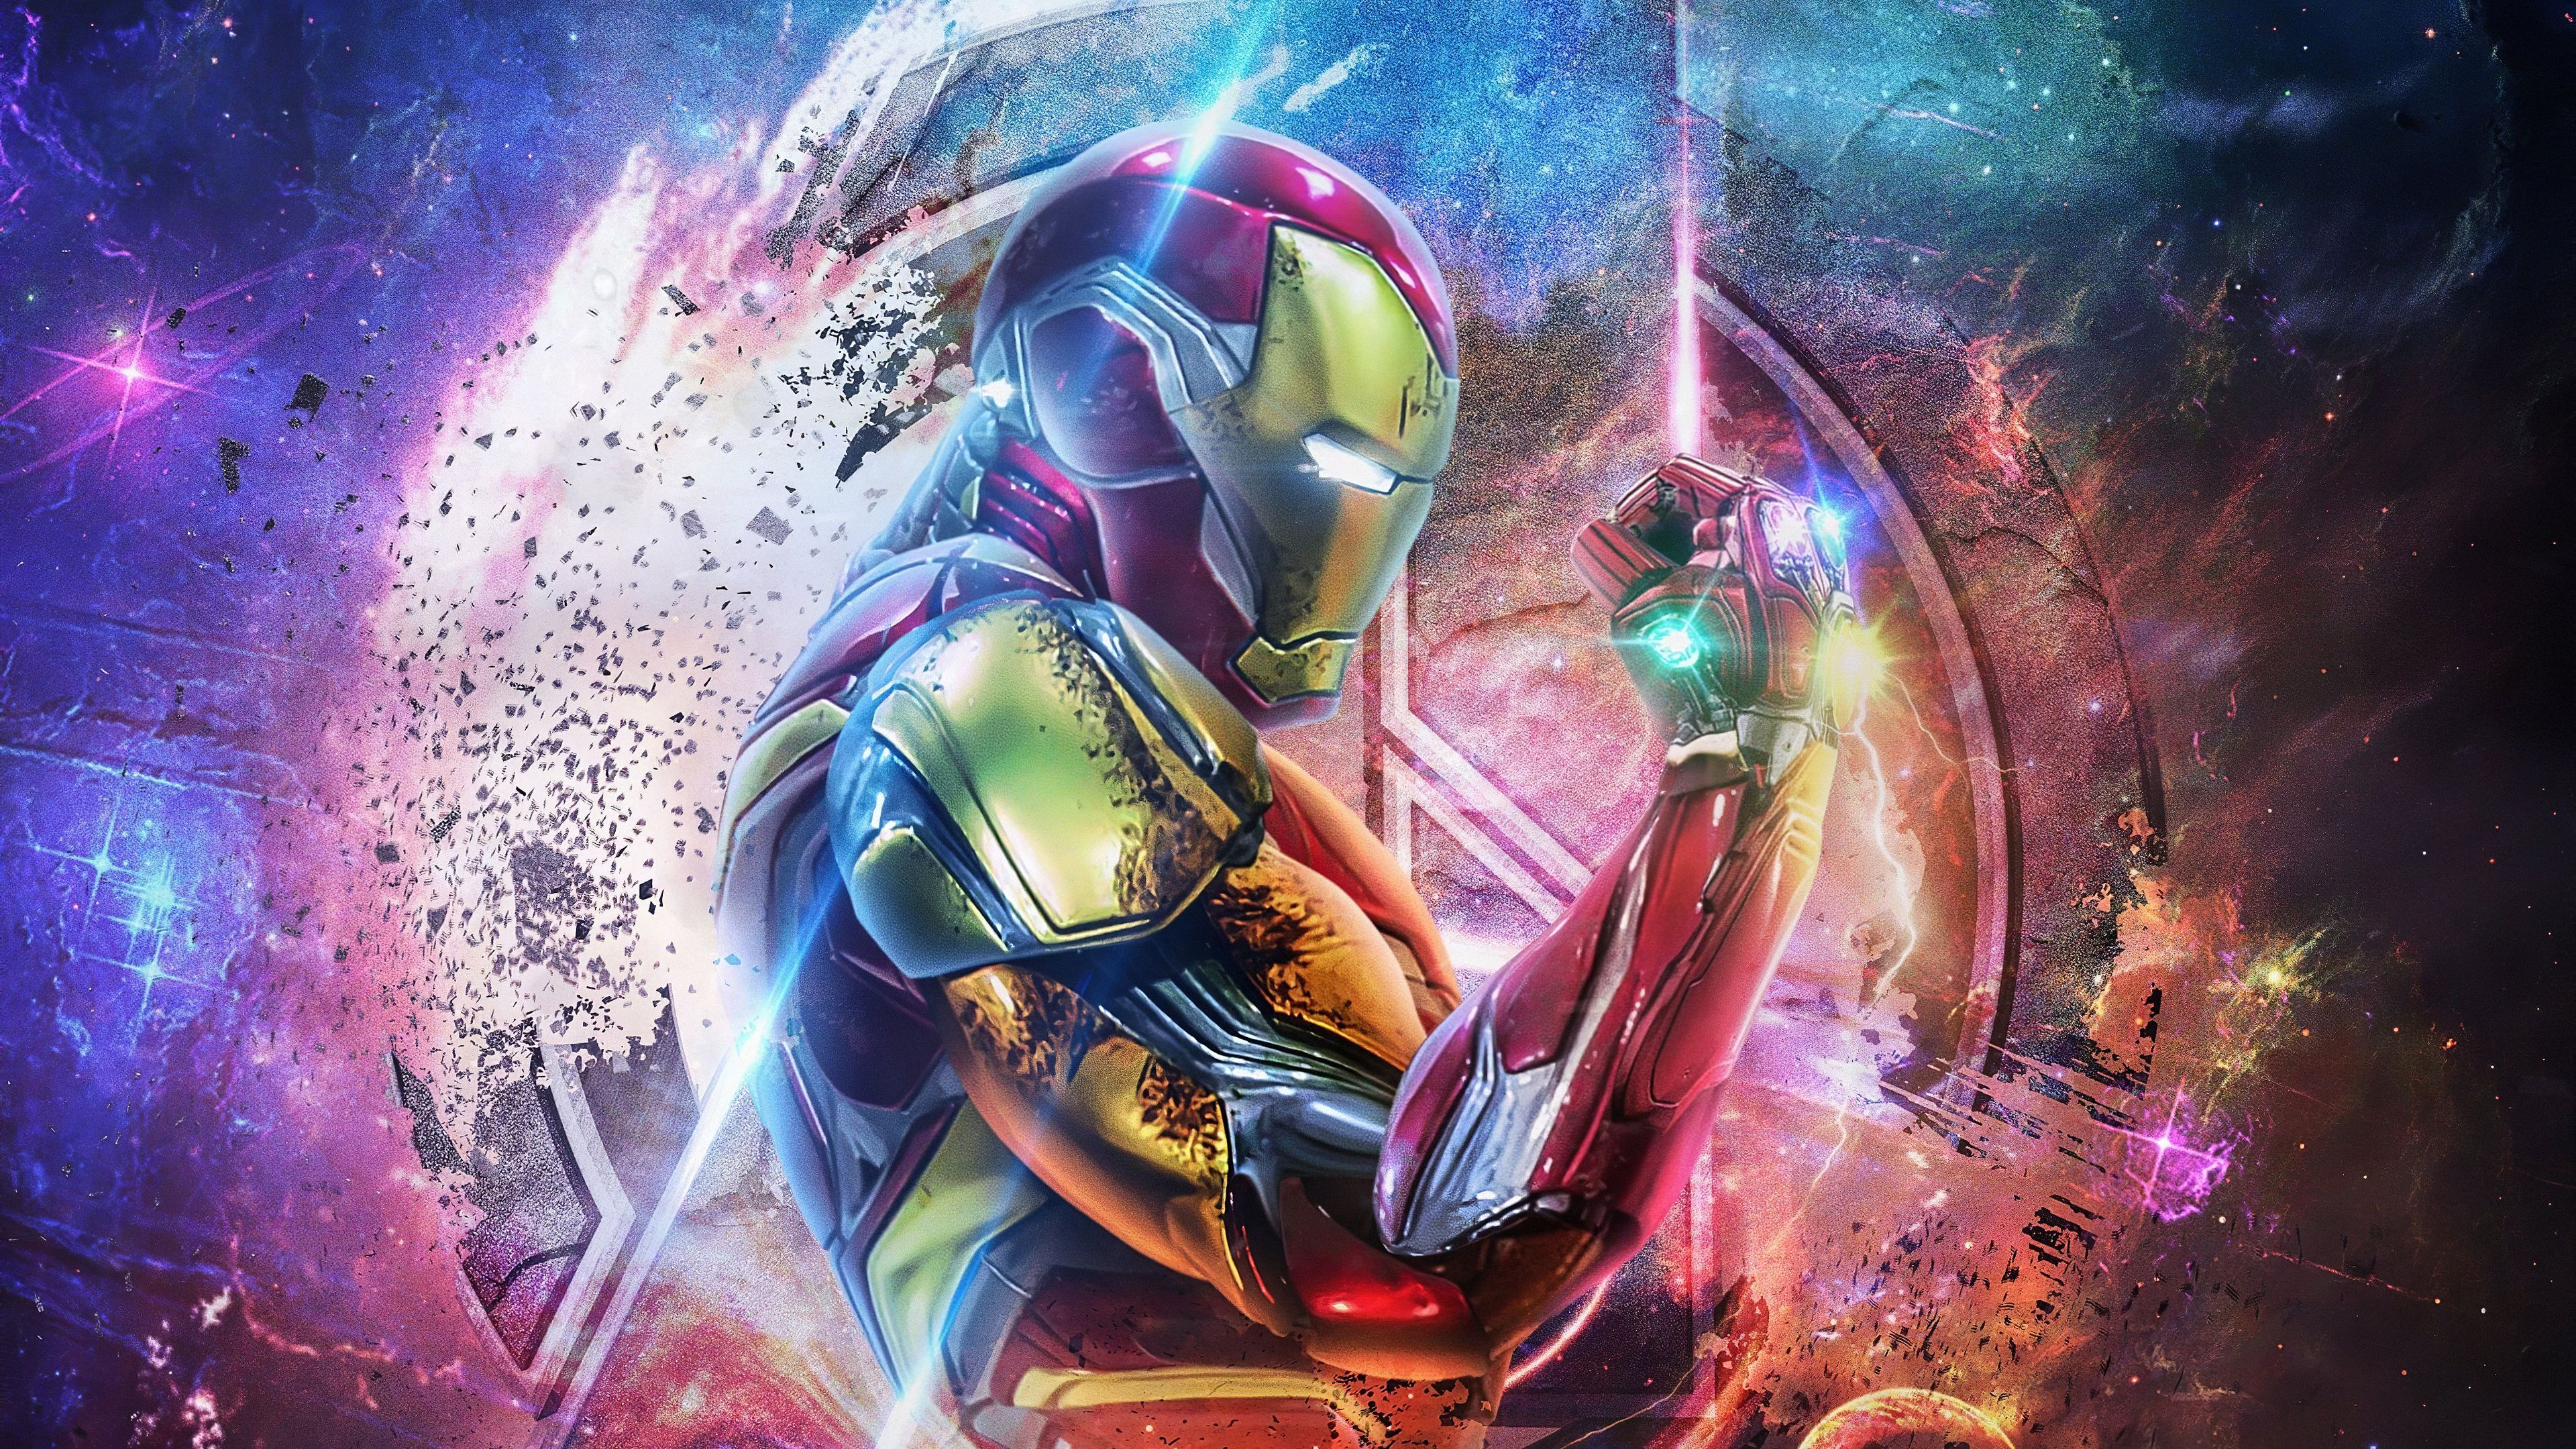 Iron Man Avengers Endgame Superheroes Wallpapers Iron Man Wallpapers Hd Wallpapers Digital Art Wa In 2020 Iron Man Wallpaper Iron Man Hd Wallpaper Iron Man Avengers